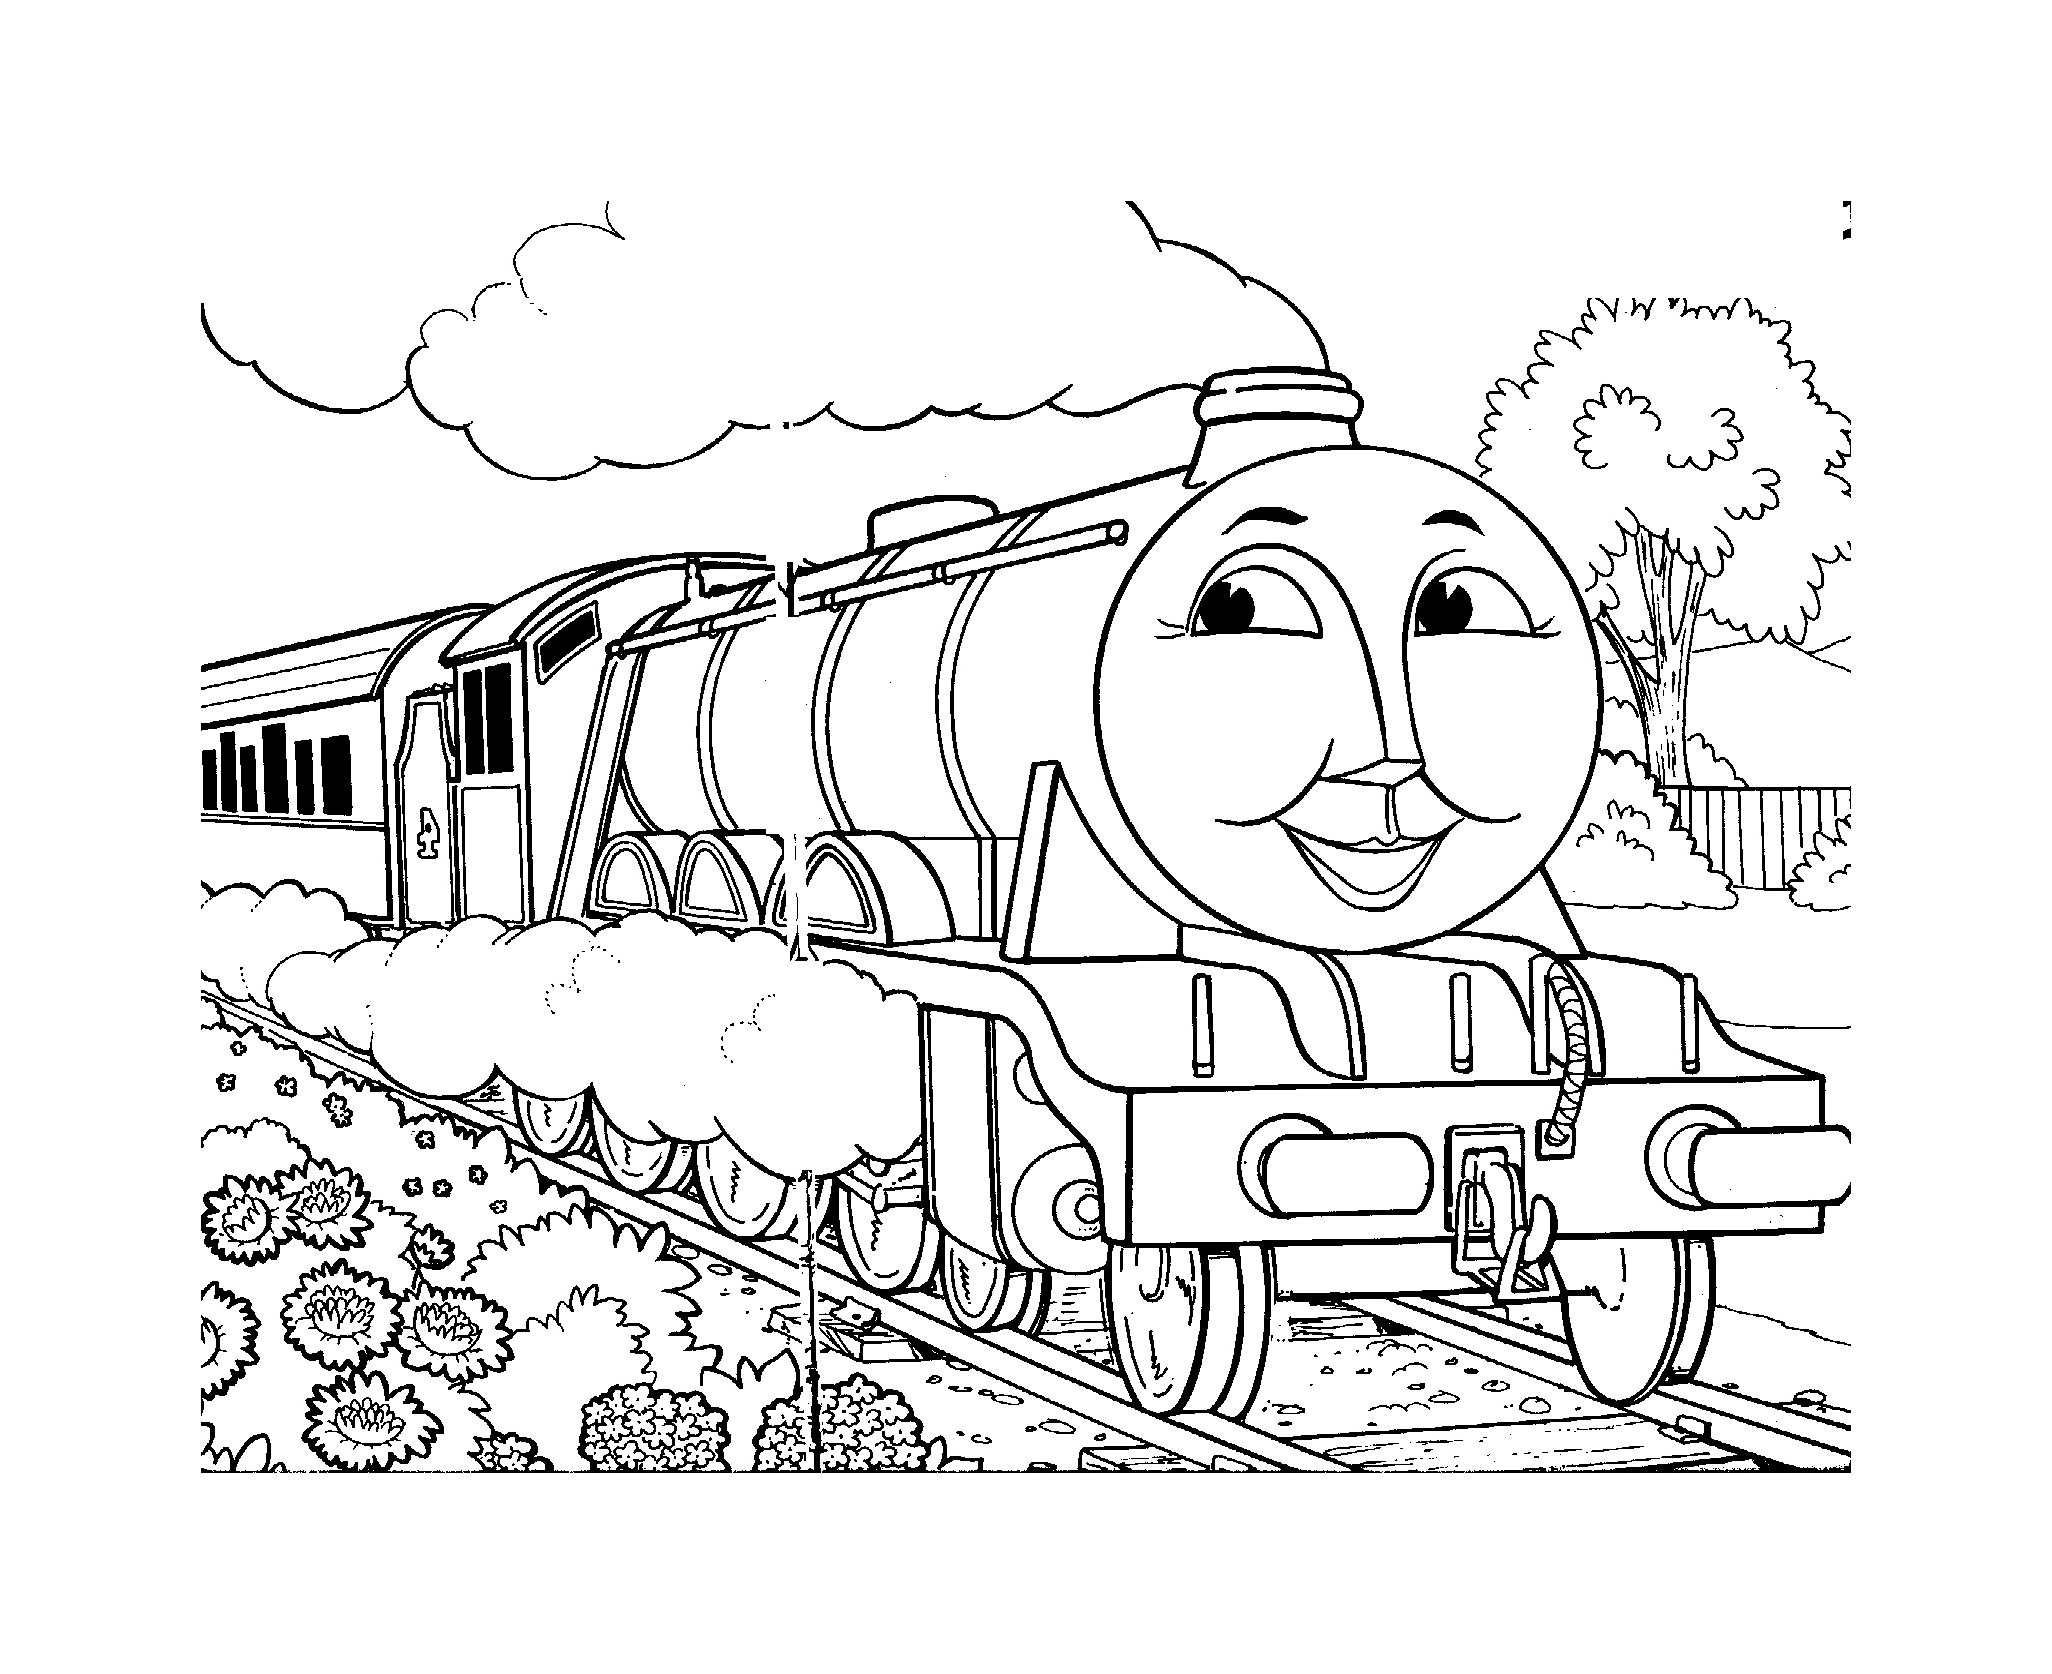 Funny free Thomas And Friends coloring page to print and color